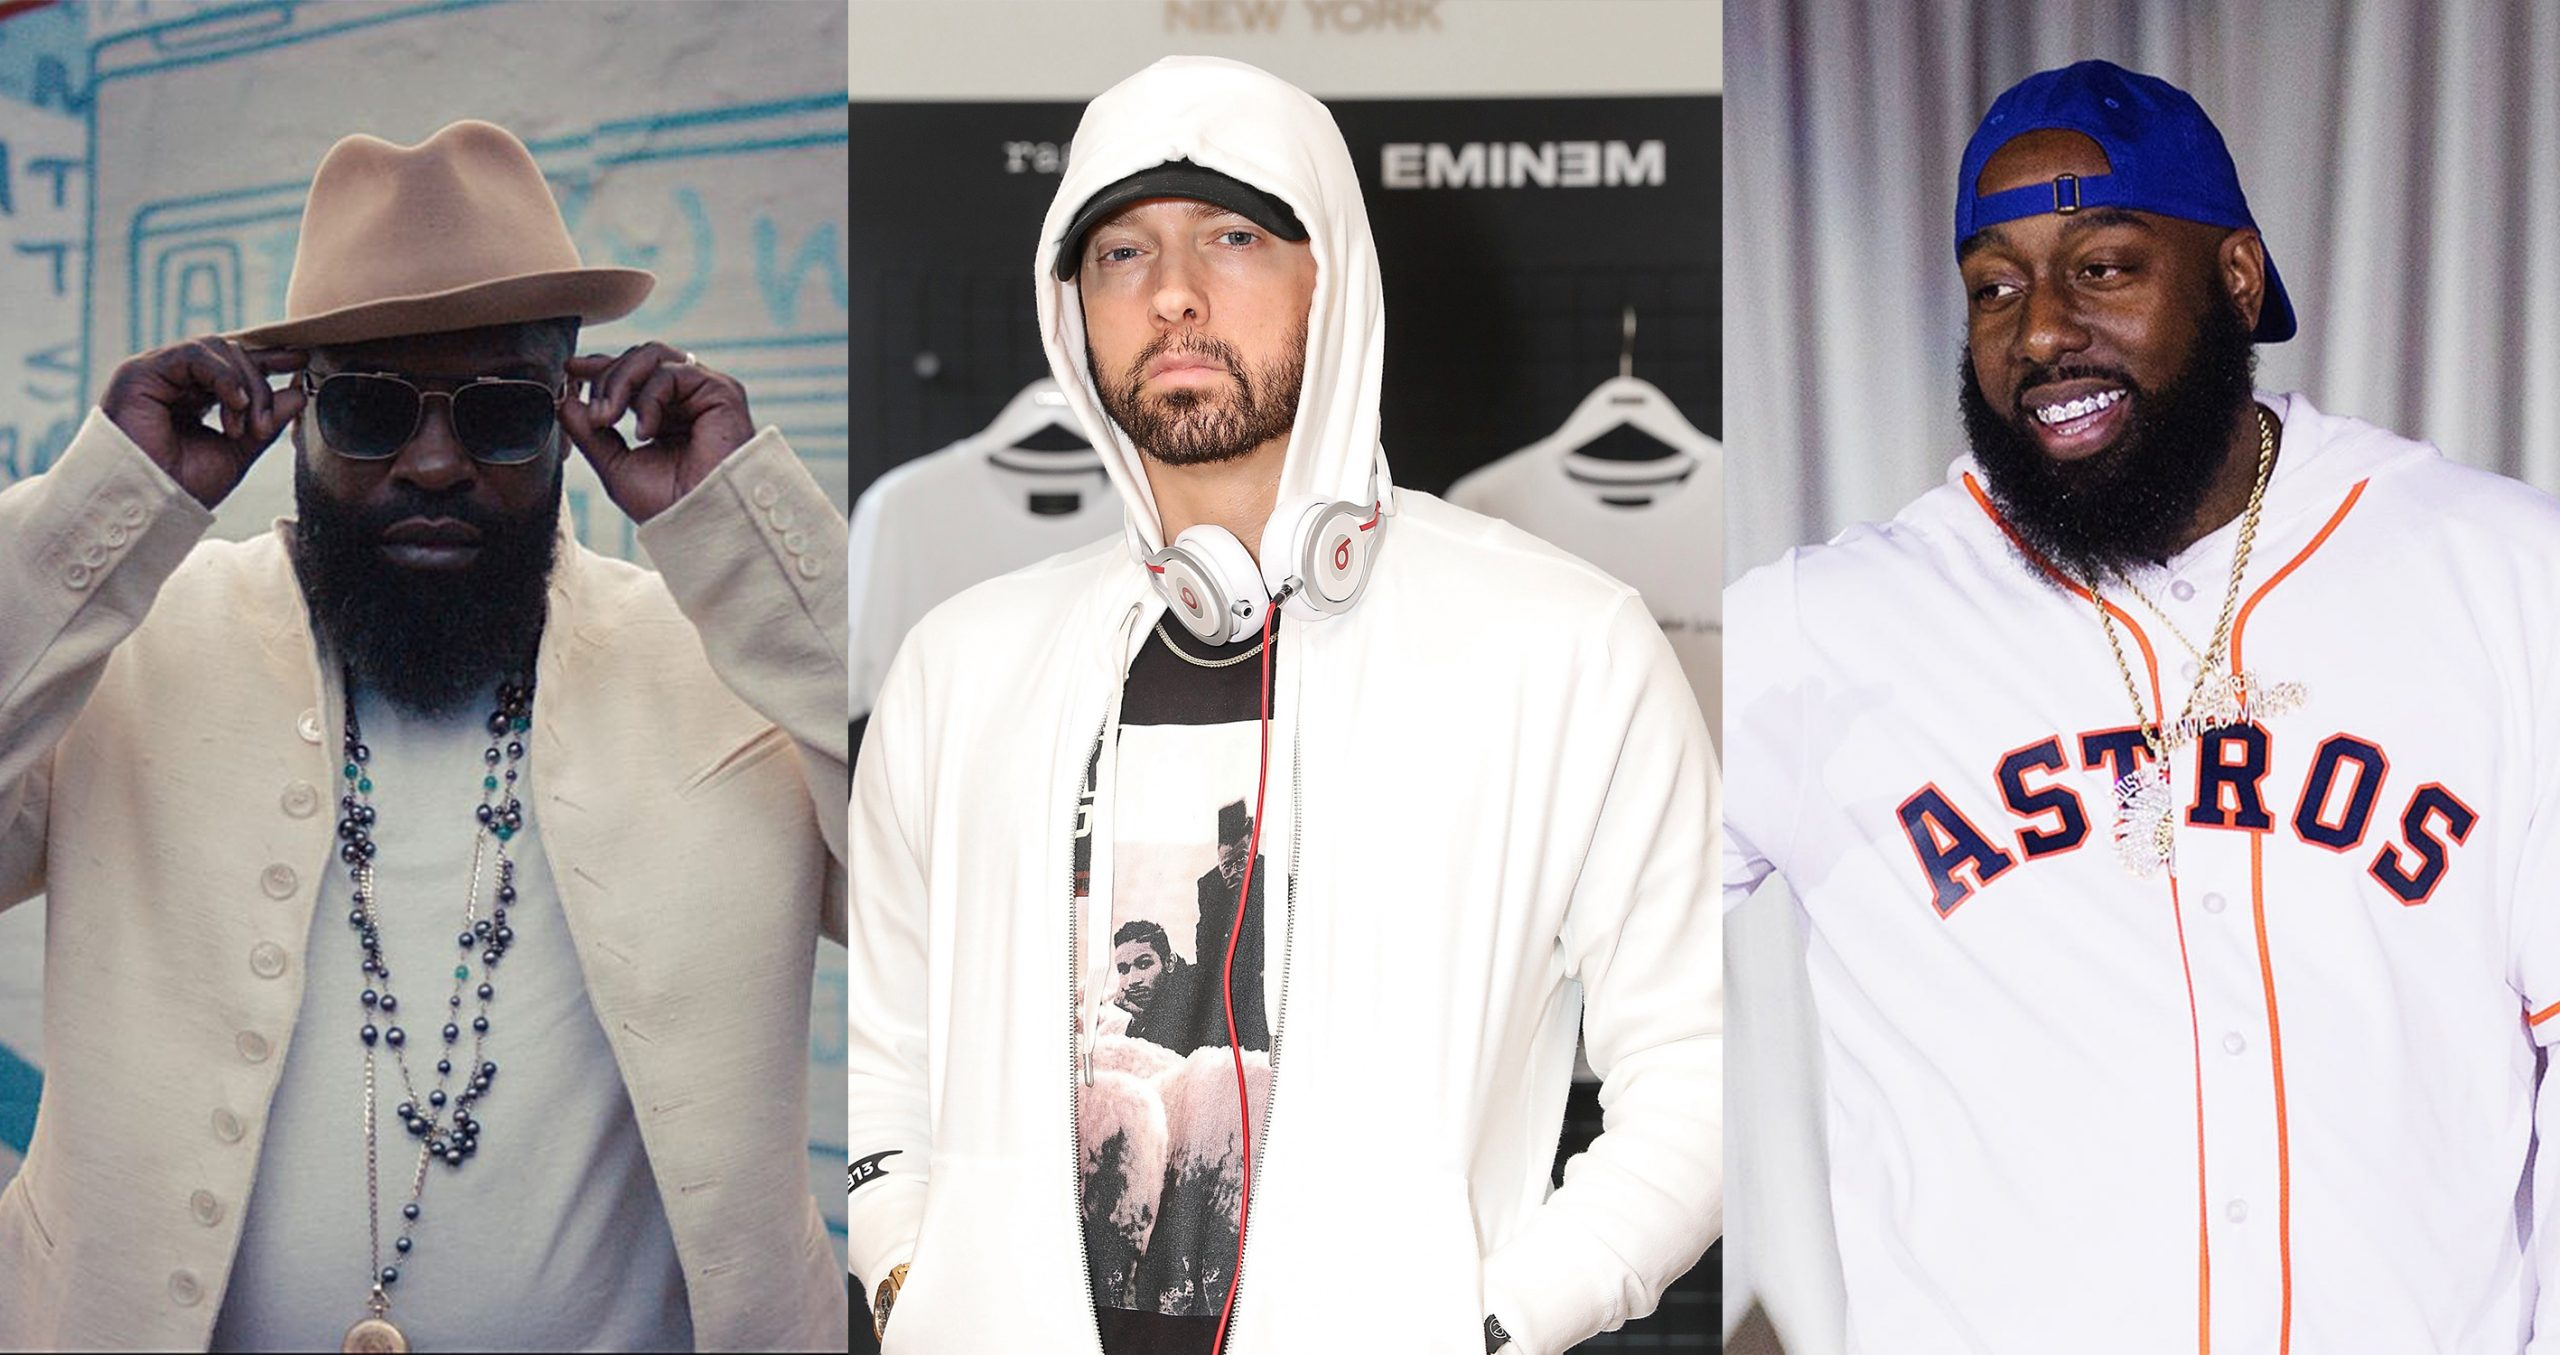 trae-tha-truth-eminem-black-thought